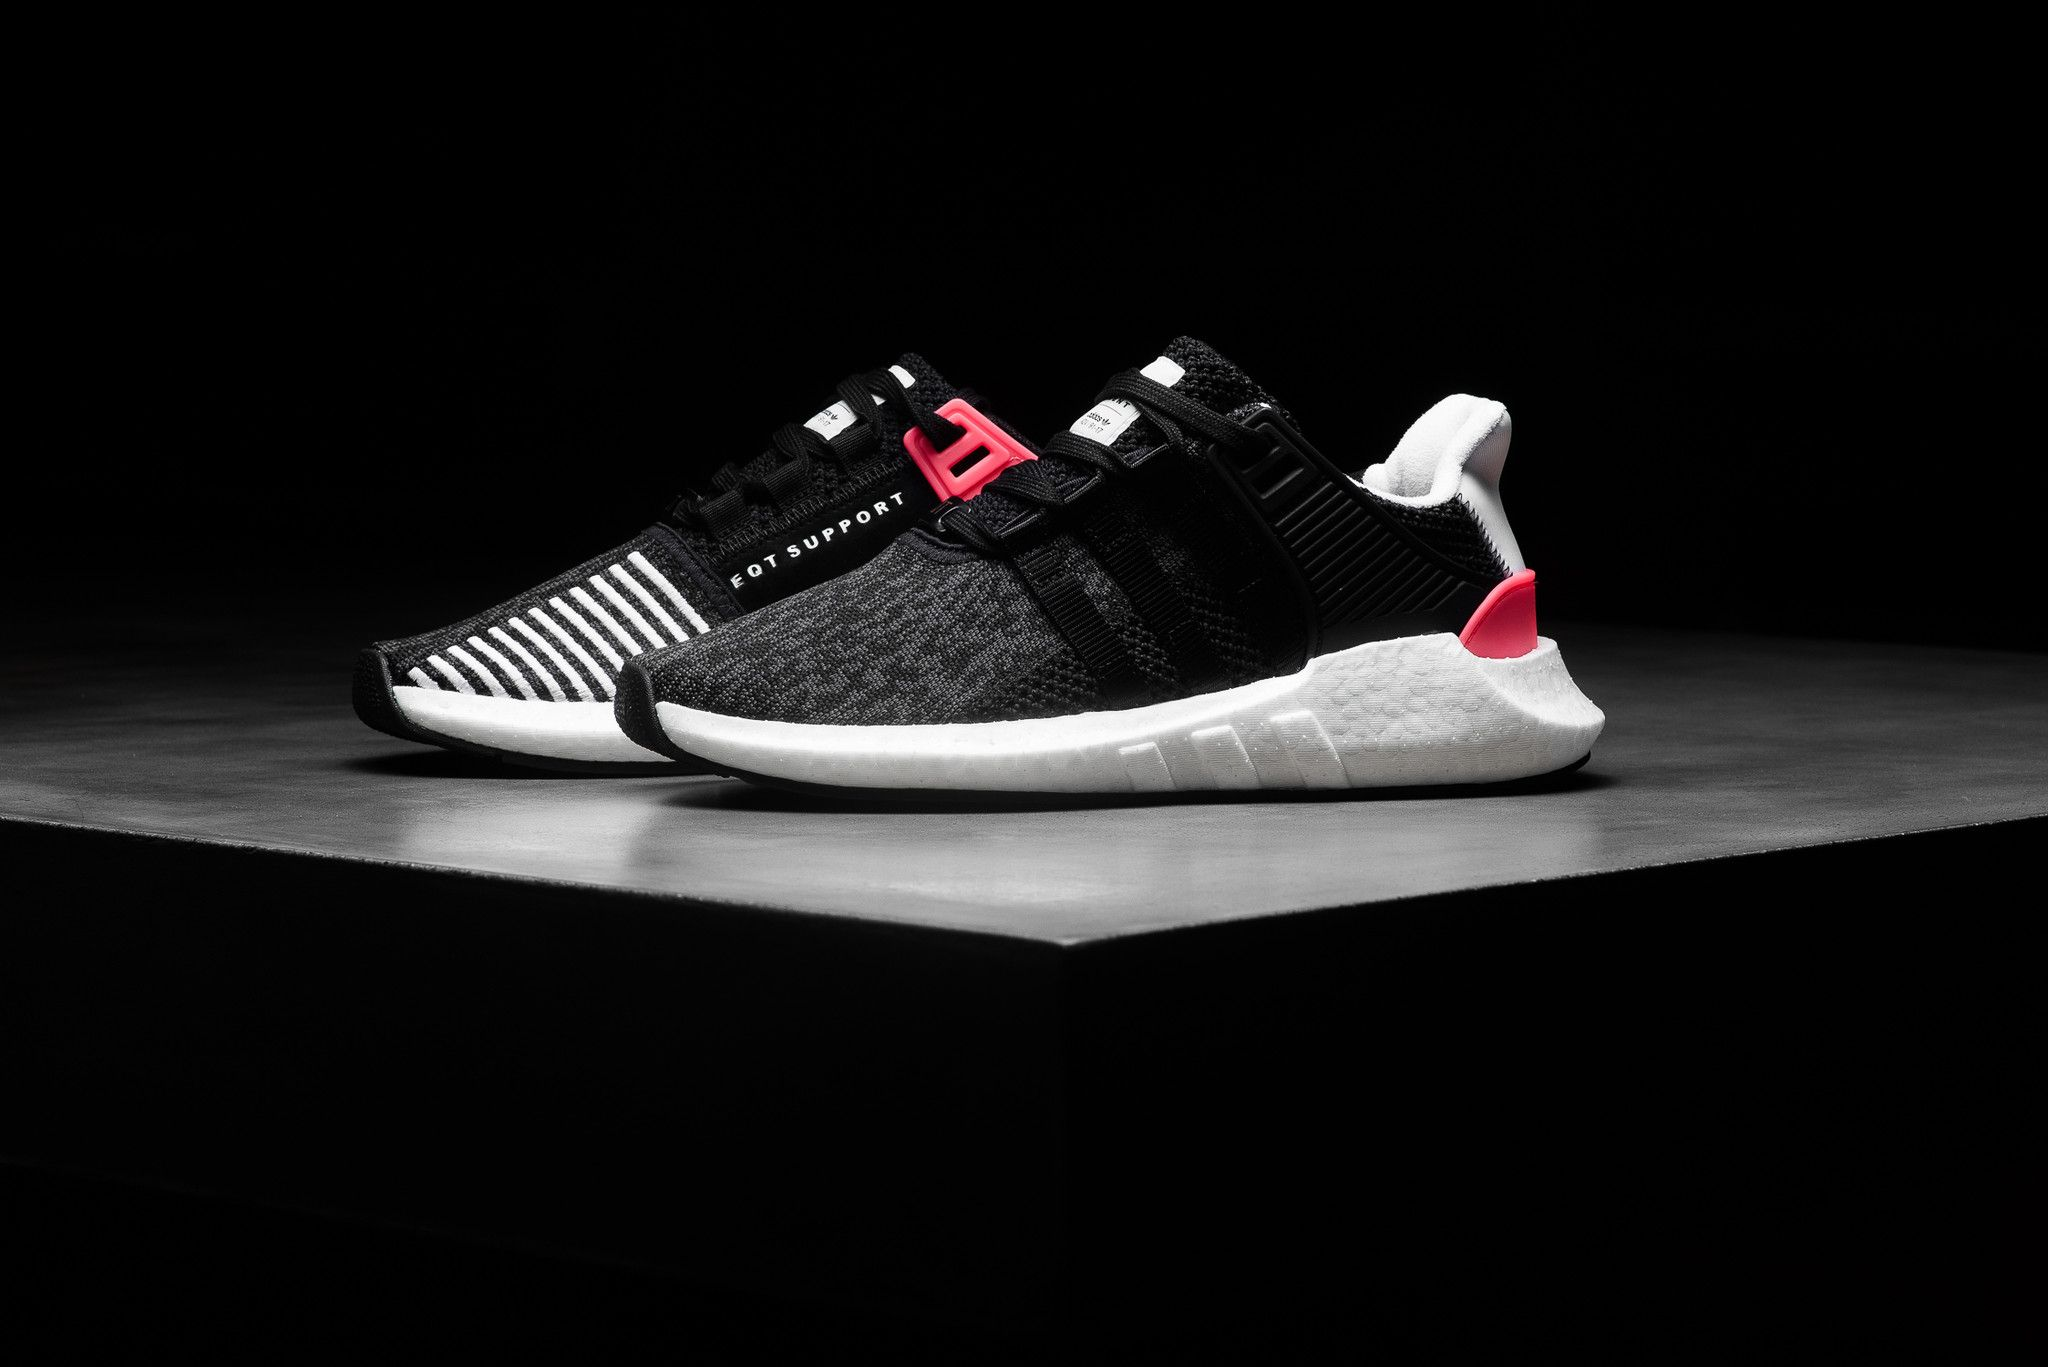 Adidas EQT Support 93/17 - Black/Turbo Red